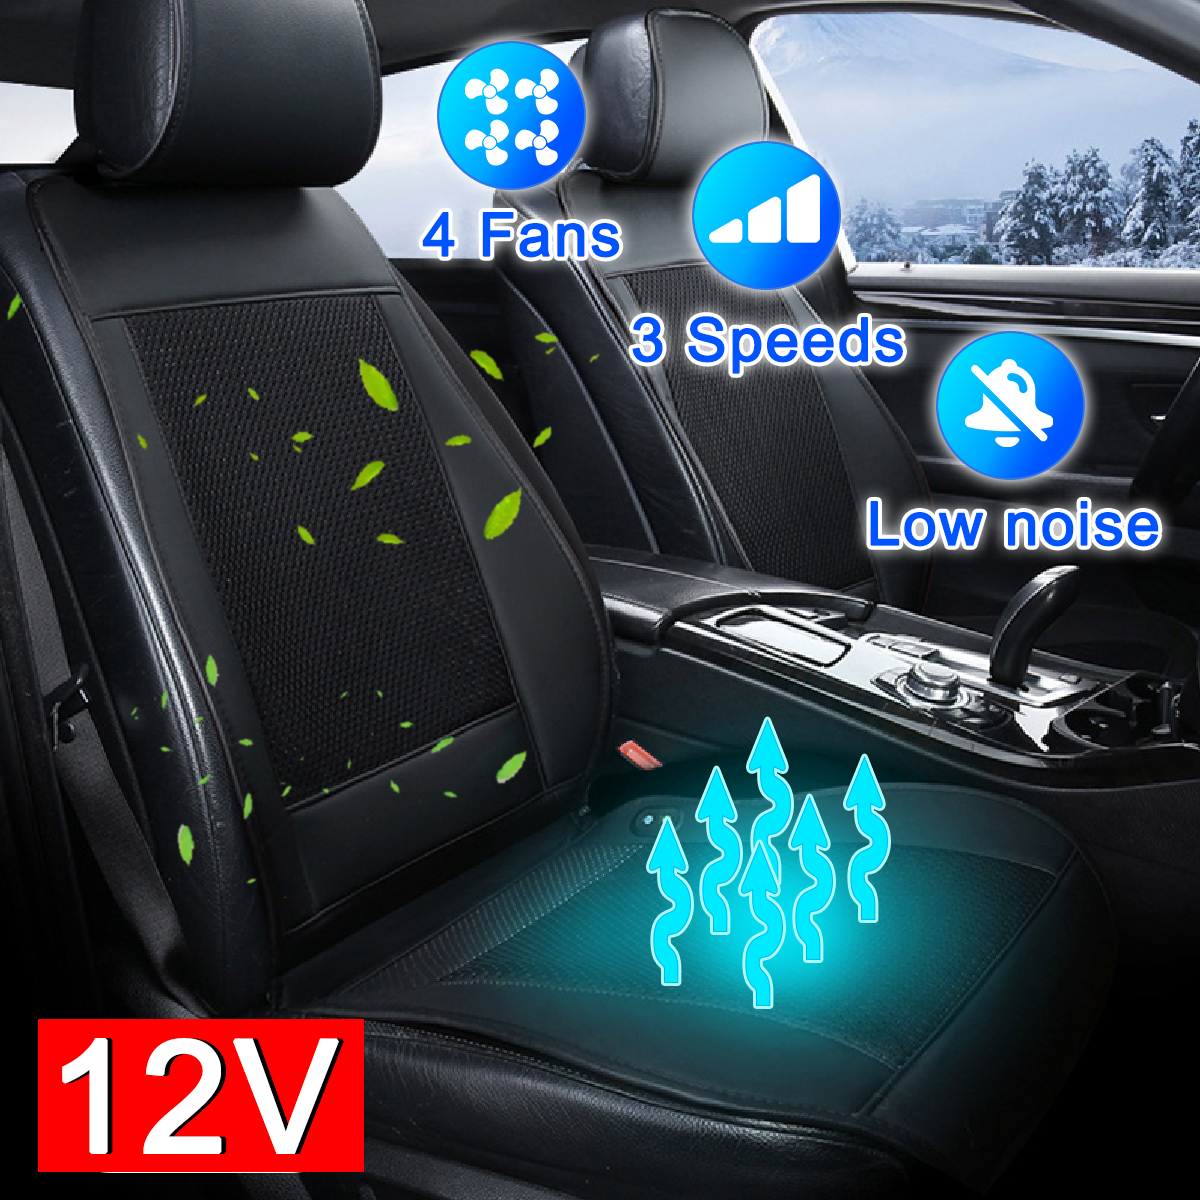 With 4 BUILT-IN Fan 12V 3D Cooling Fan Cool Cushion Fan Blowing Cool 3 Speed Car Ventilation Cushion Summer Air Cooler Chair Pa